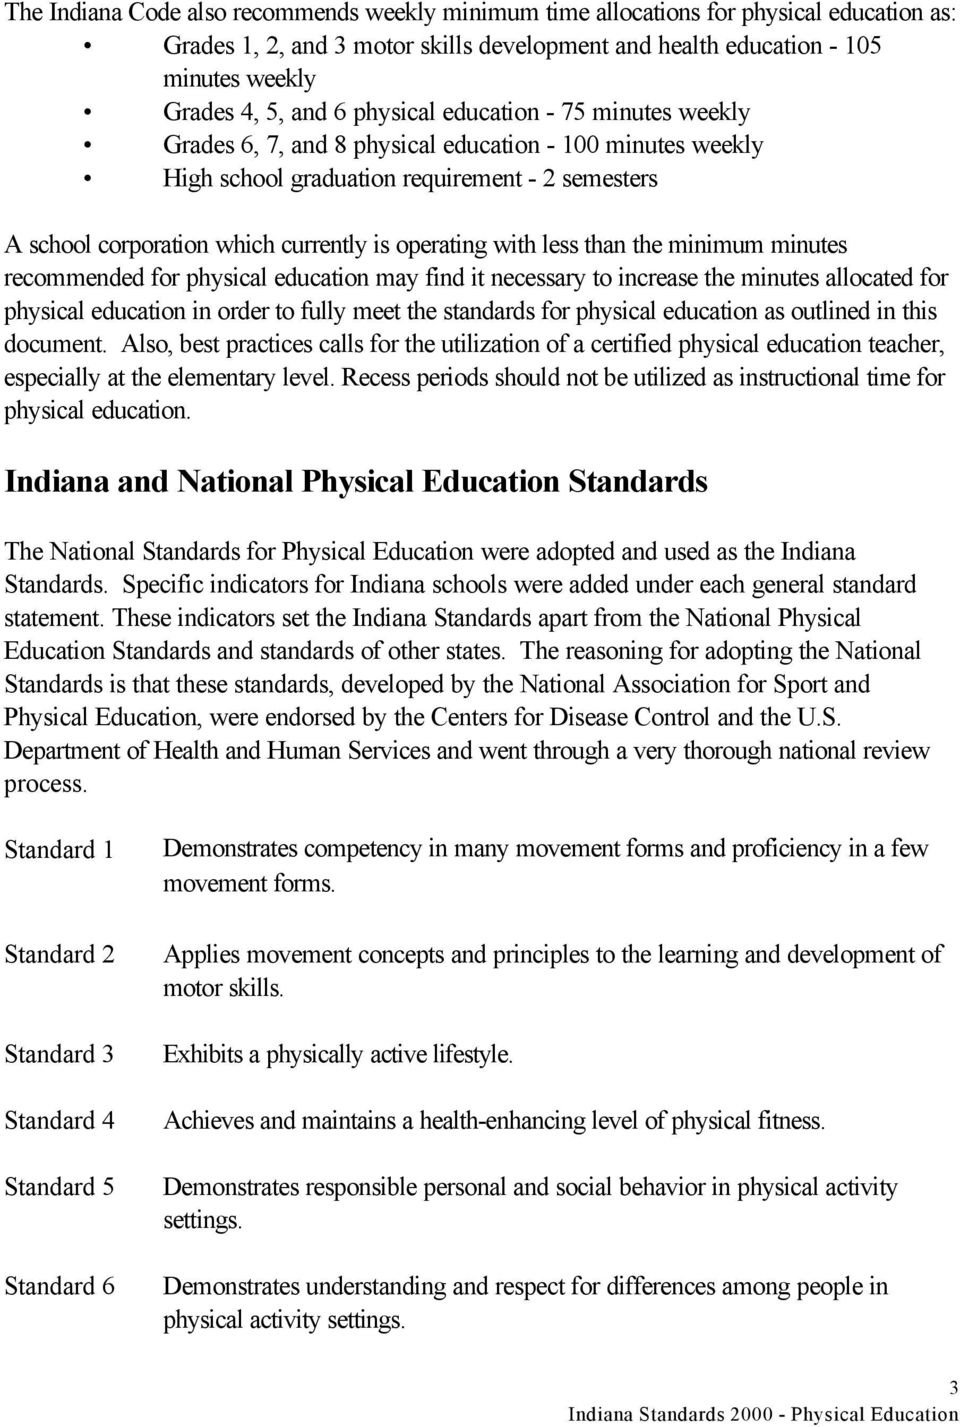 with less than the minimum minutes recommended for physical education may find it necessary to increase the minutes allocated for physical education in order to fully meet the standards for physical